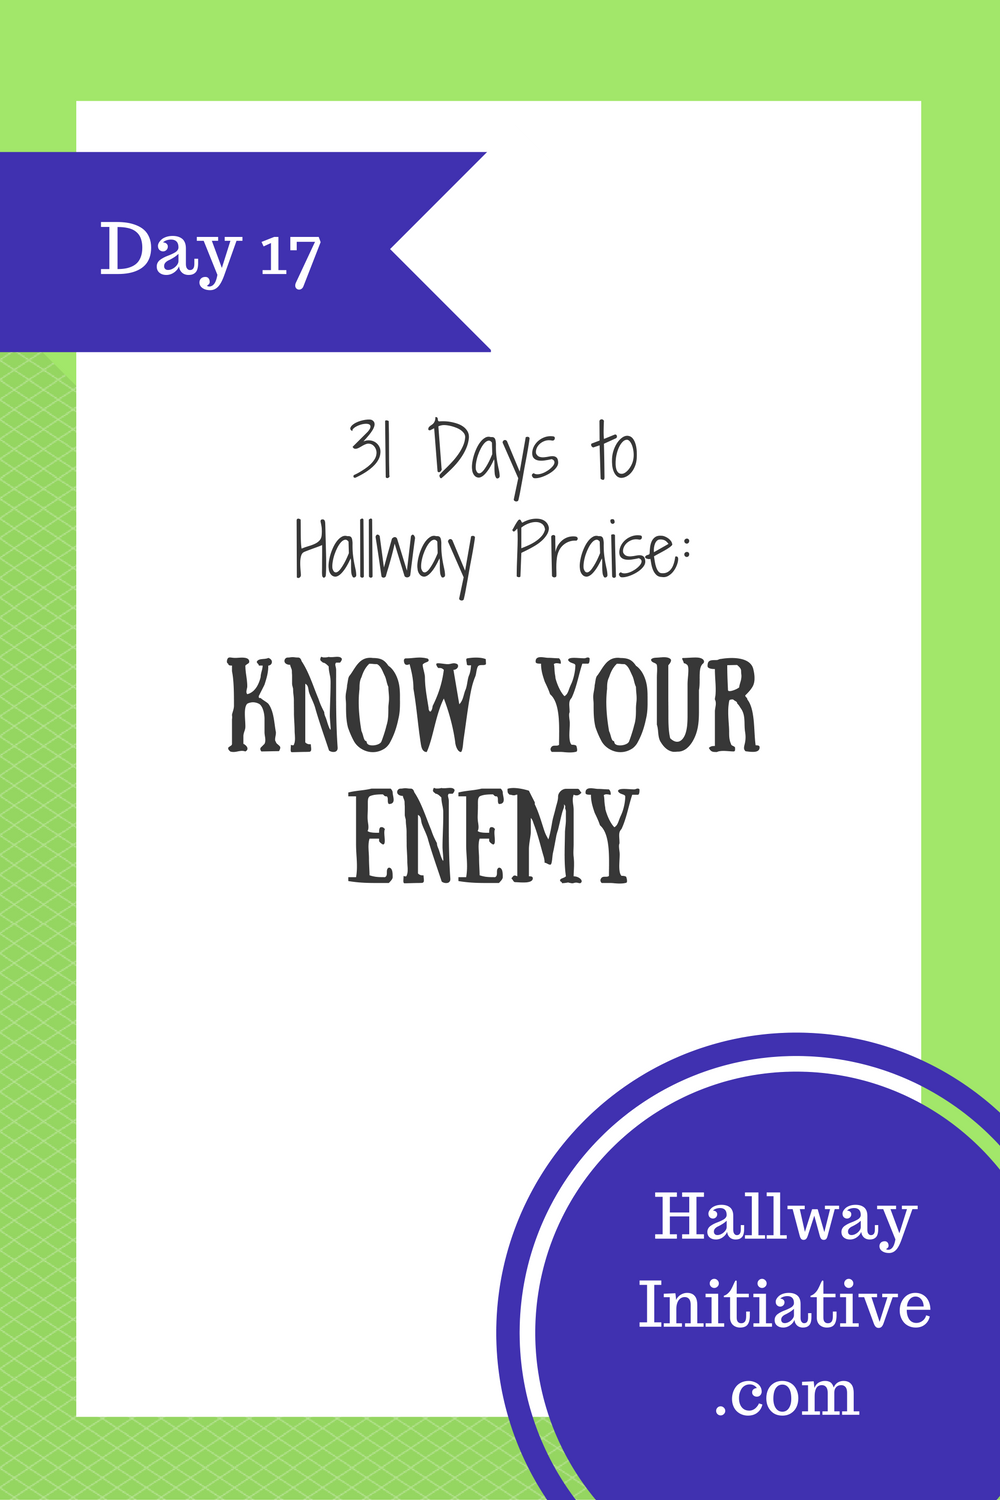 Day 17: know your enemy